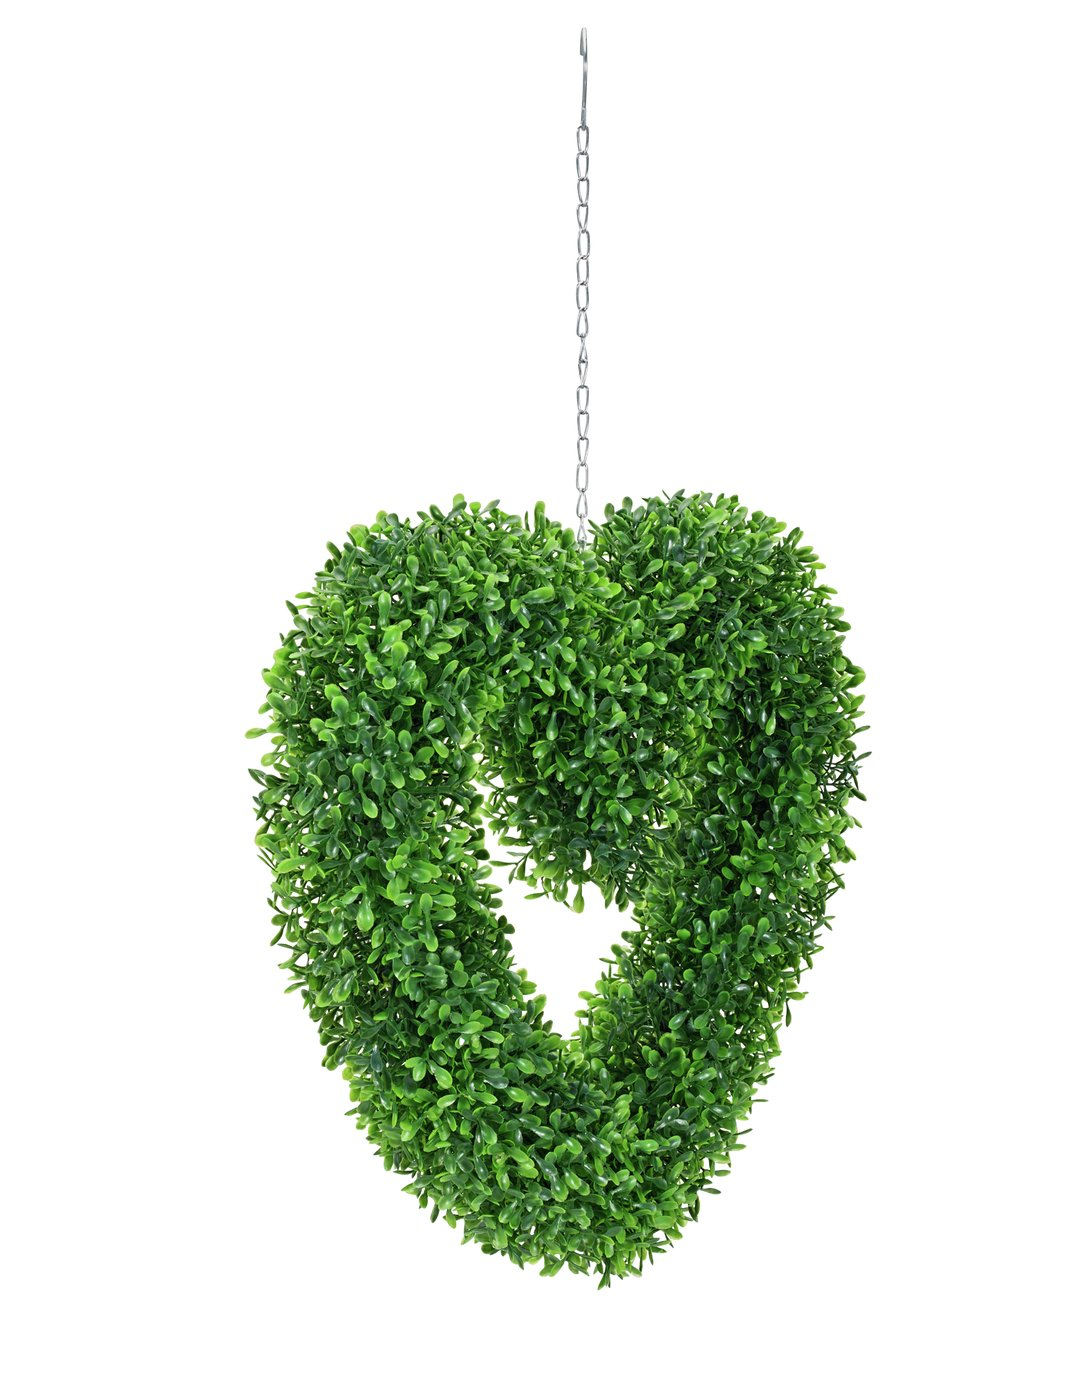 Image of Artifical Grass Garden Hanging Heart